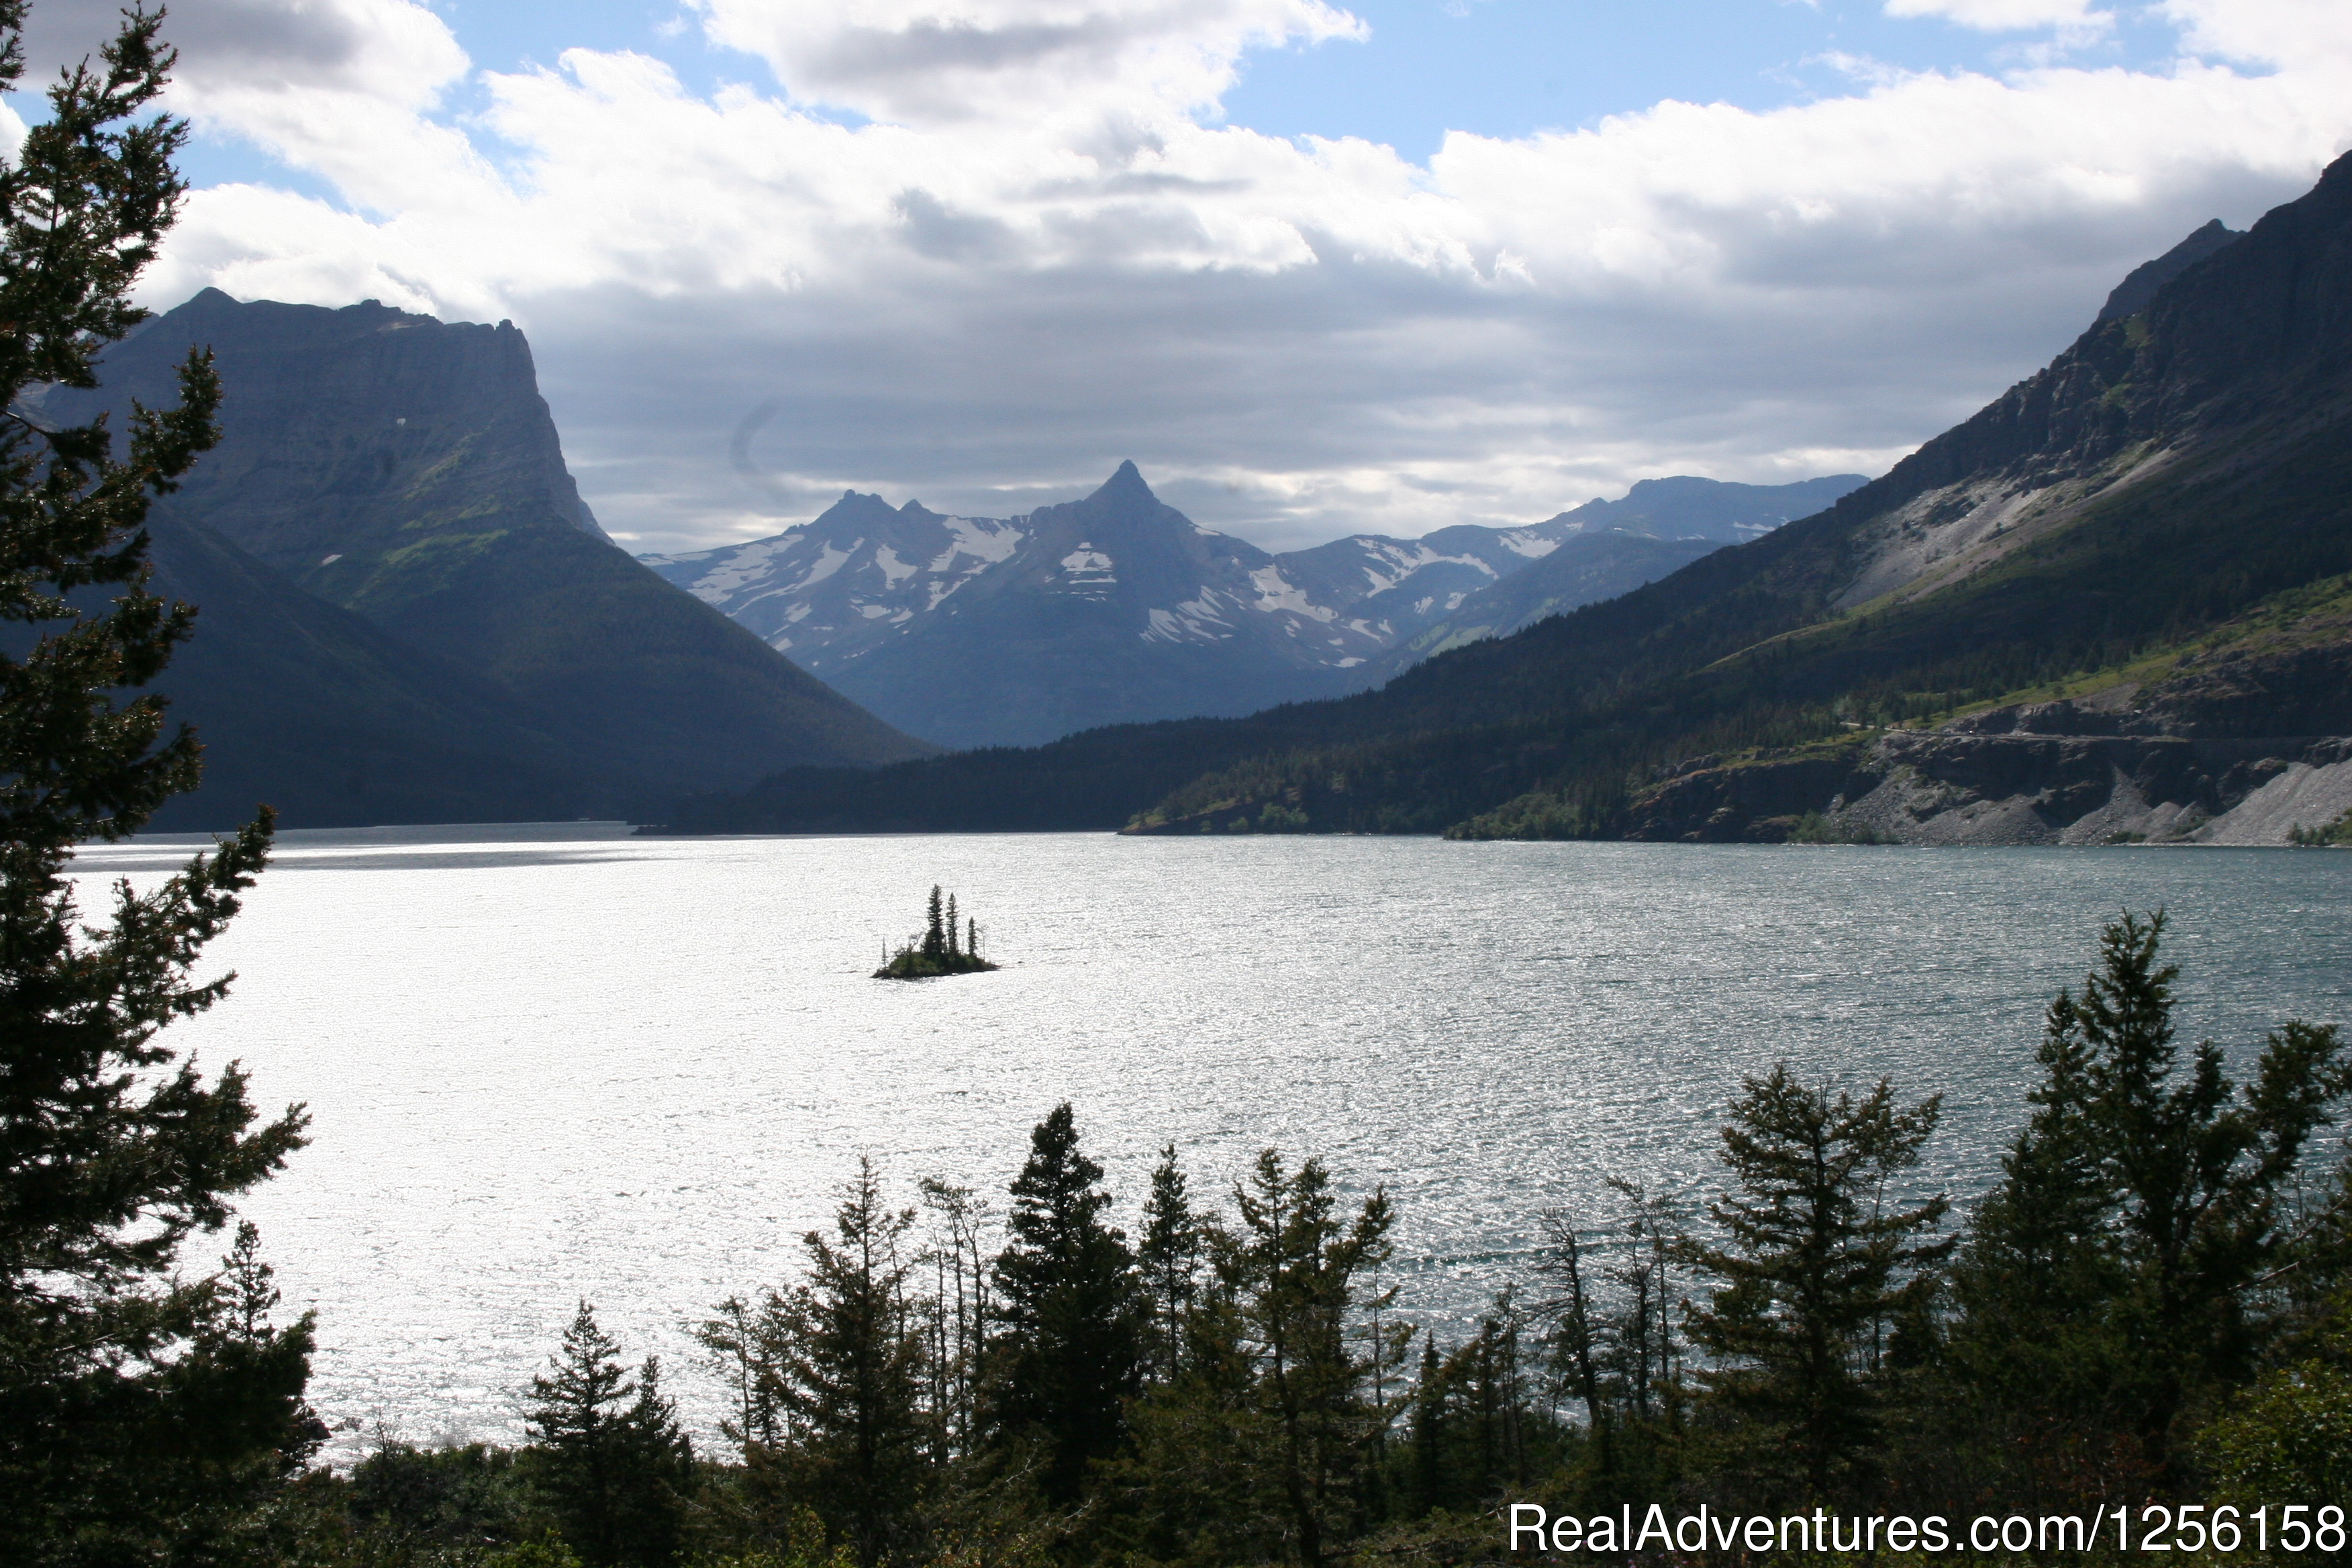 Glacier National Park is just 23 miles from the ranch